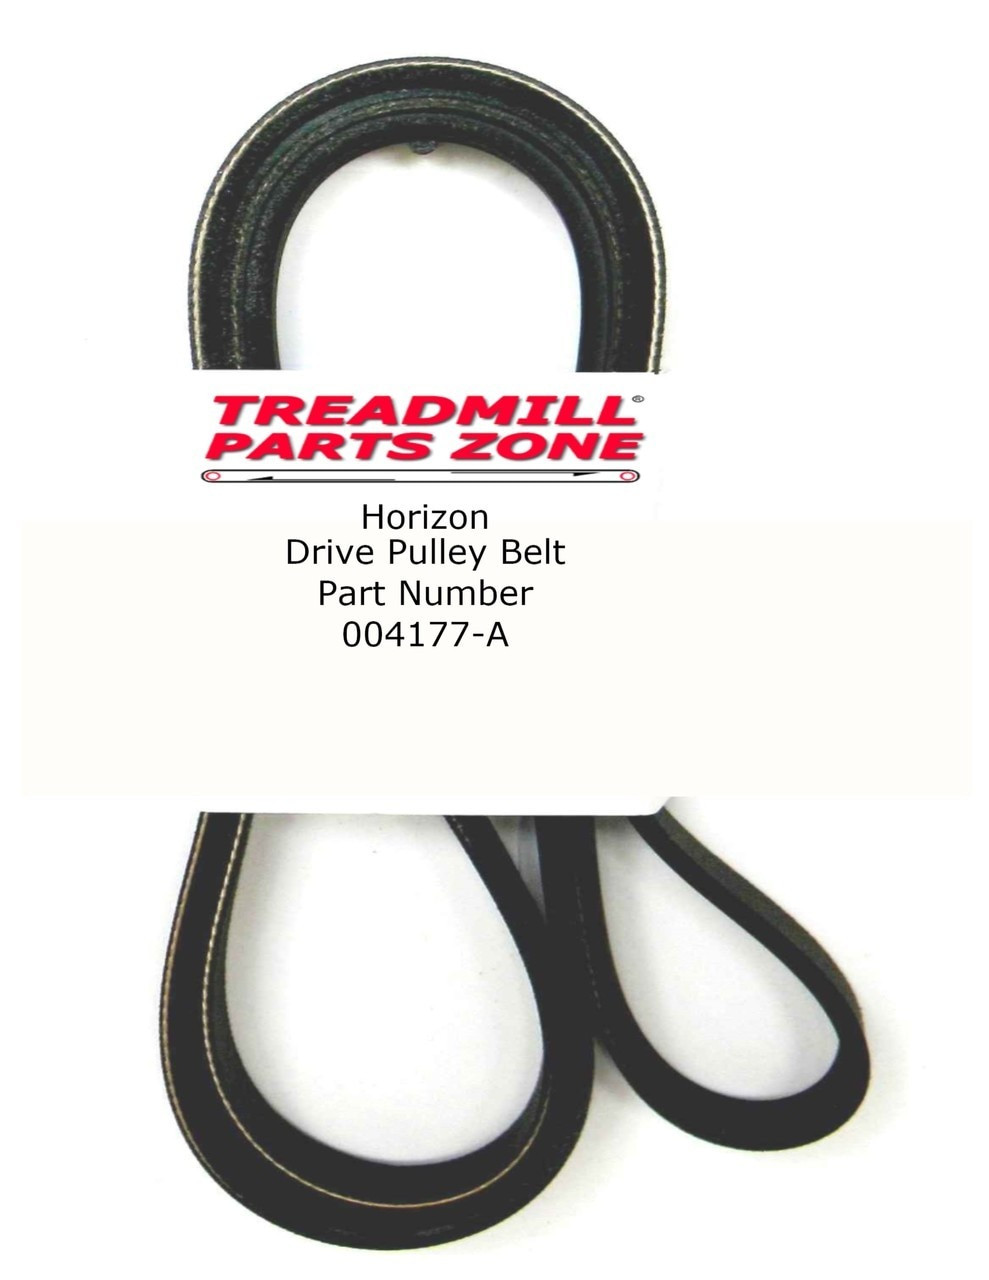 Horizon Elliptical Model RE7.6 EP164 Drive Pulley Belt Part Number 004177-A